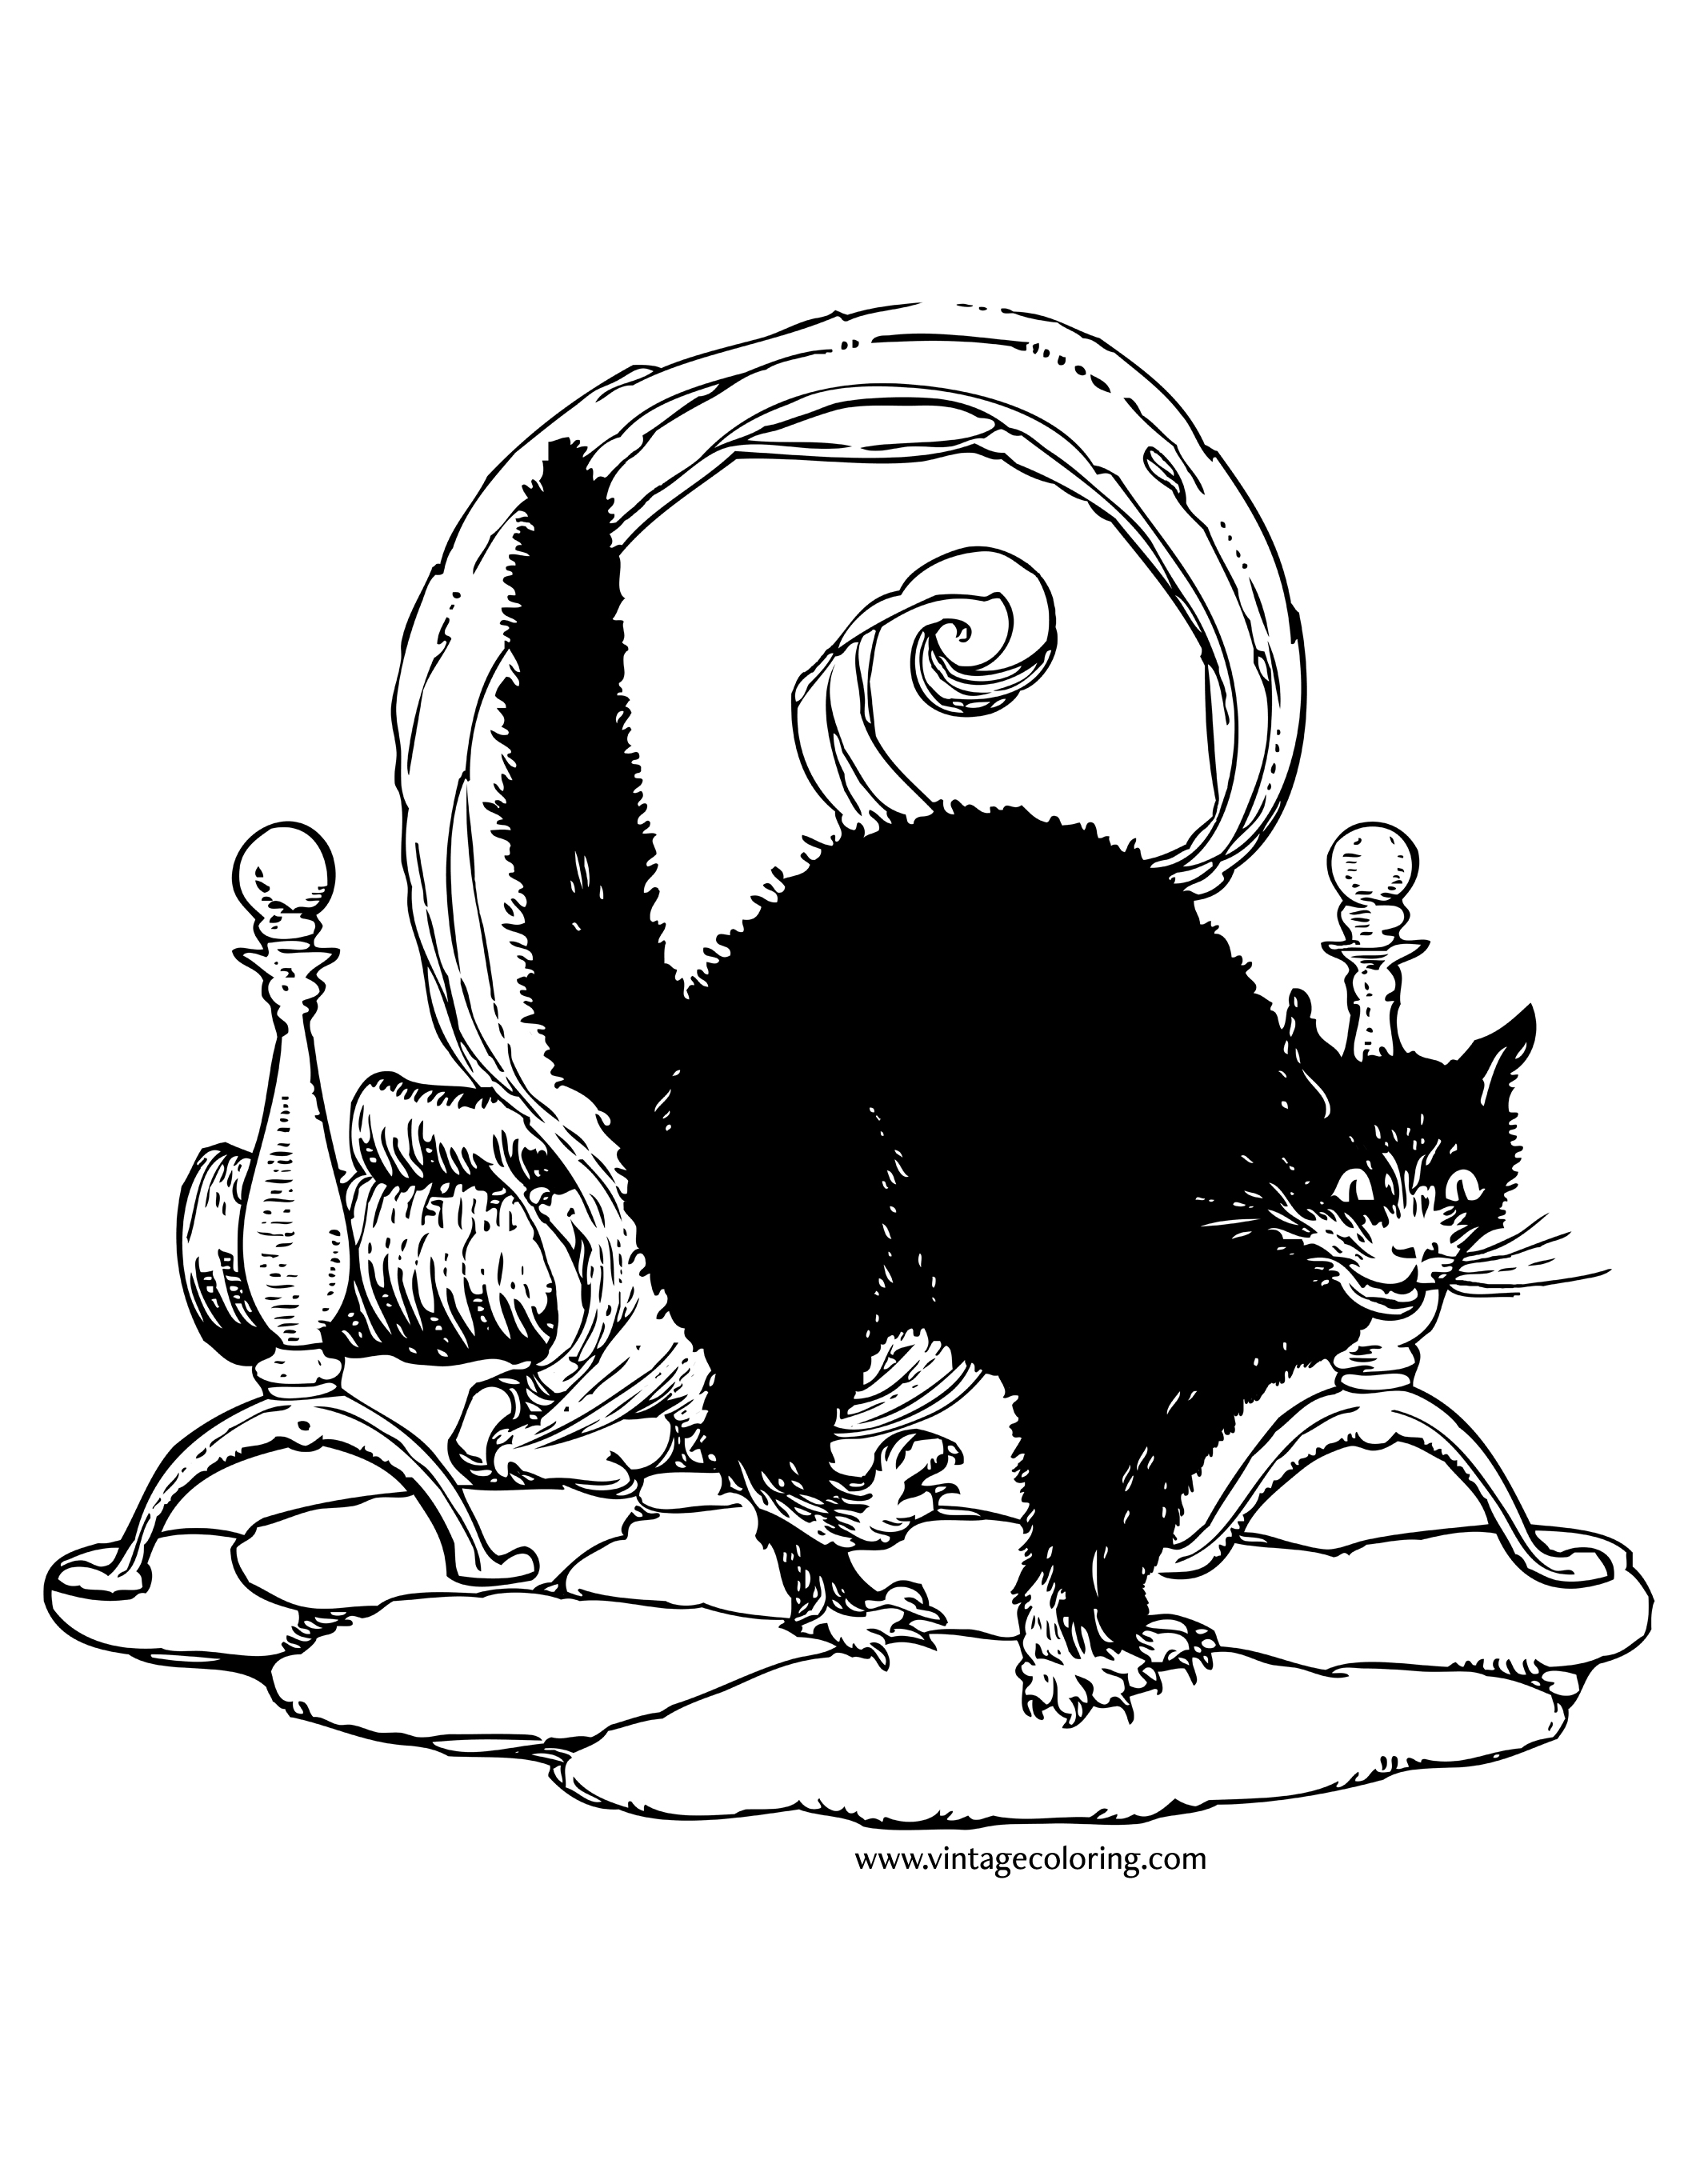 halloween black cat coloring pages halloween black cat a free vintage coloring page coloring halloween cat pages black